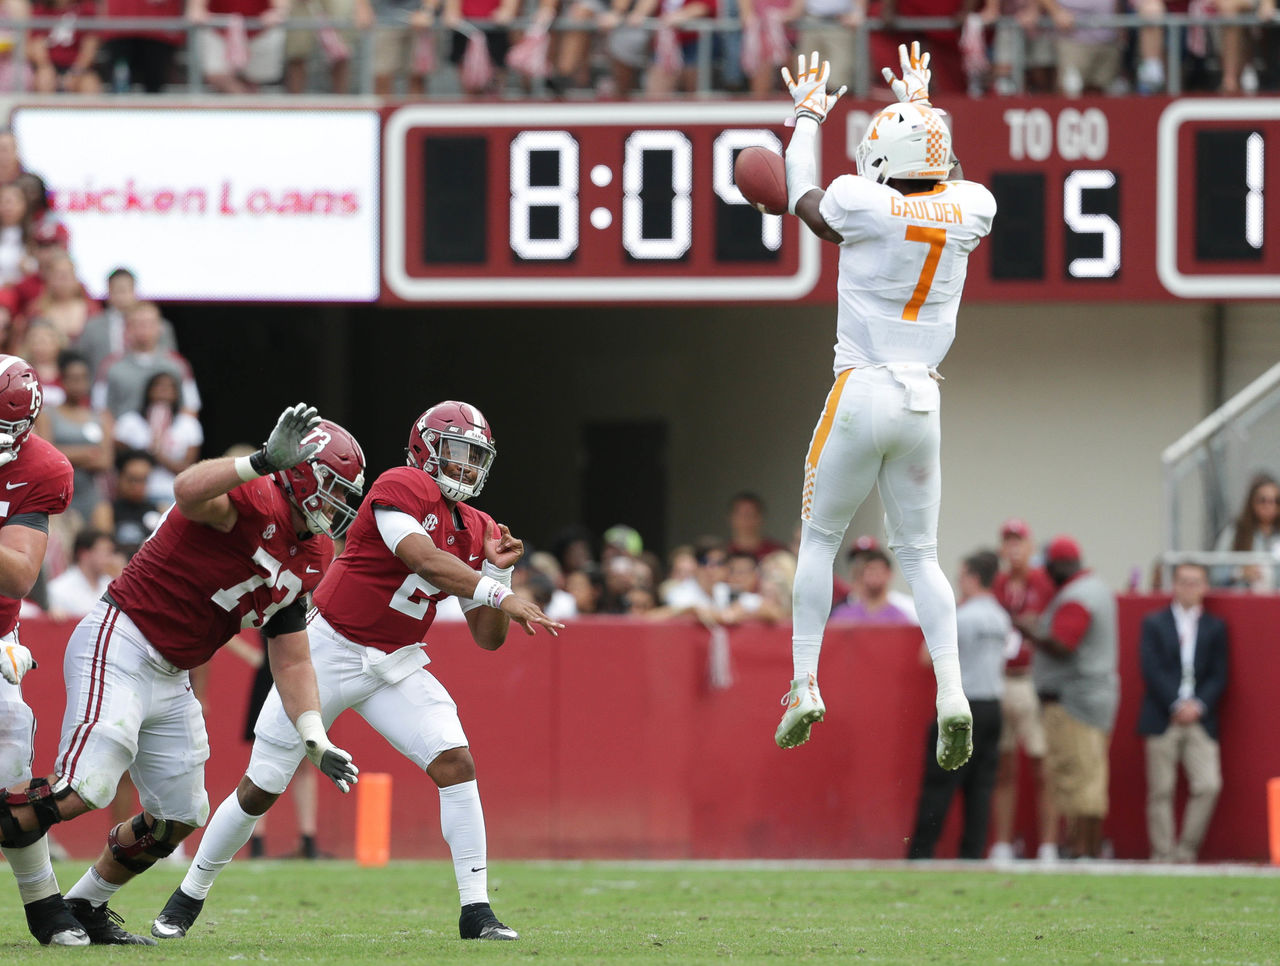 Cropped 2017 10 21t212845z 437422269 nocid rtrmadp 3 ncaa football tennessee at alabama